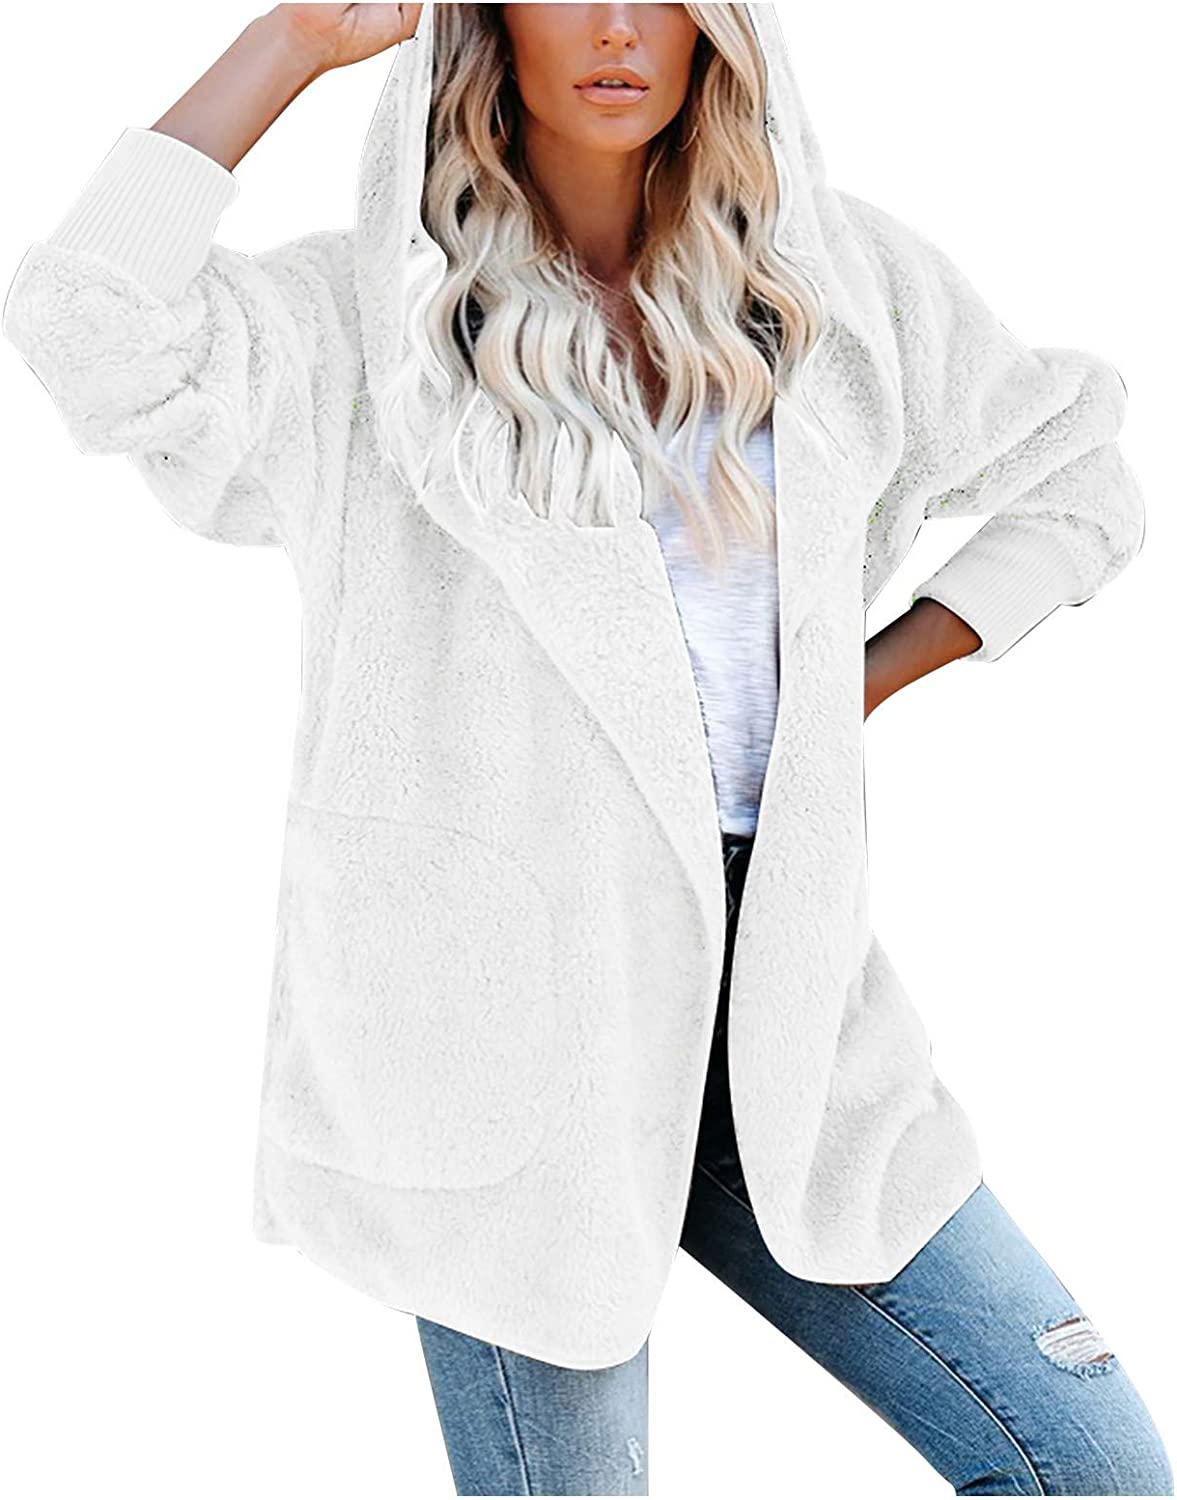 Forwelly Women Open Front Cardigan Oversize Coat Winter Warm Fluffy Plush Jacket with Hooded